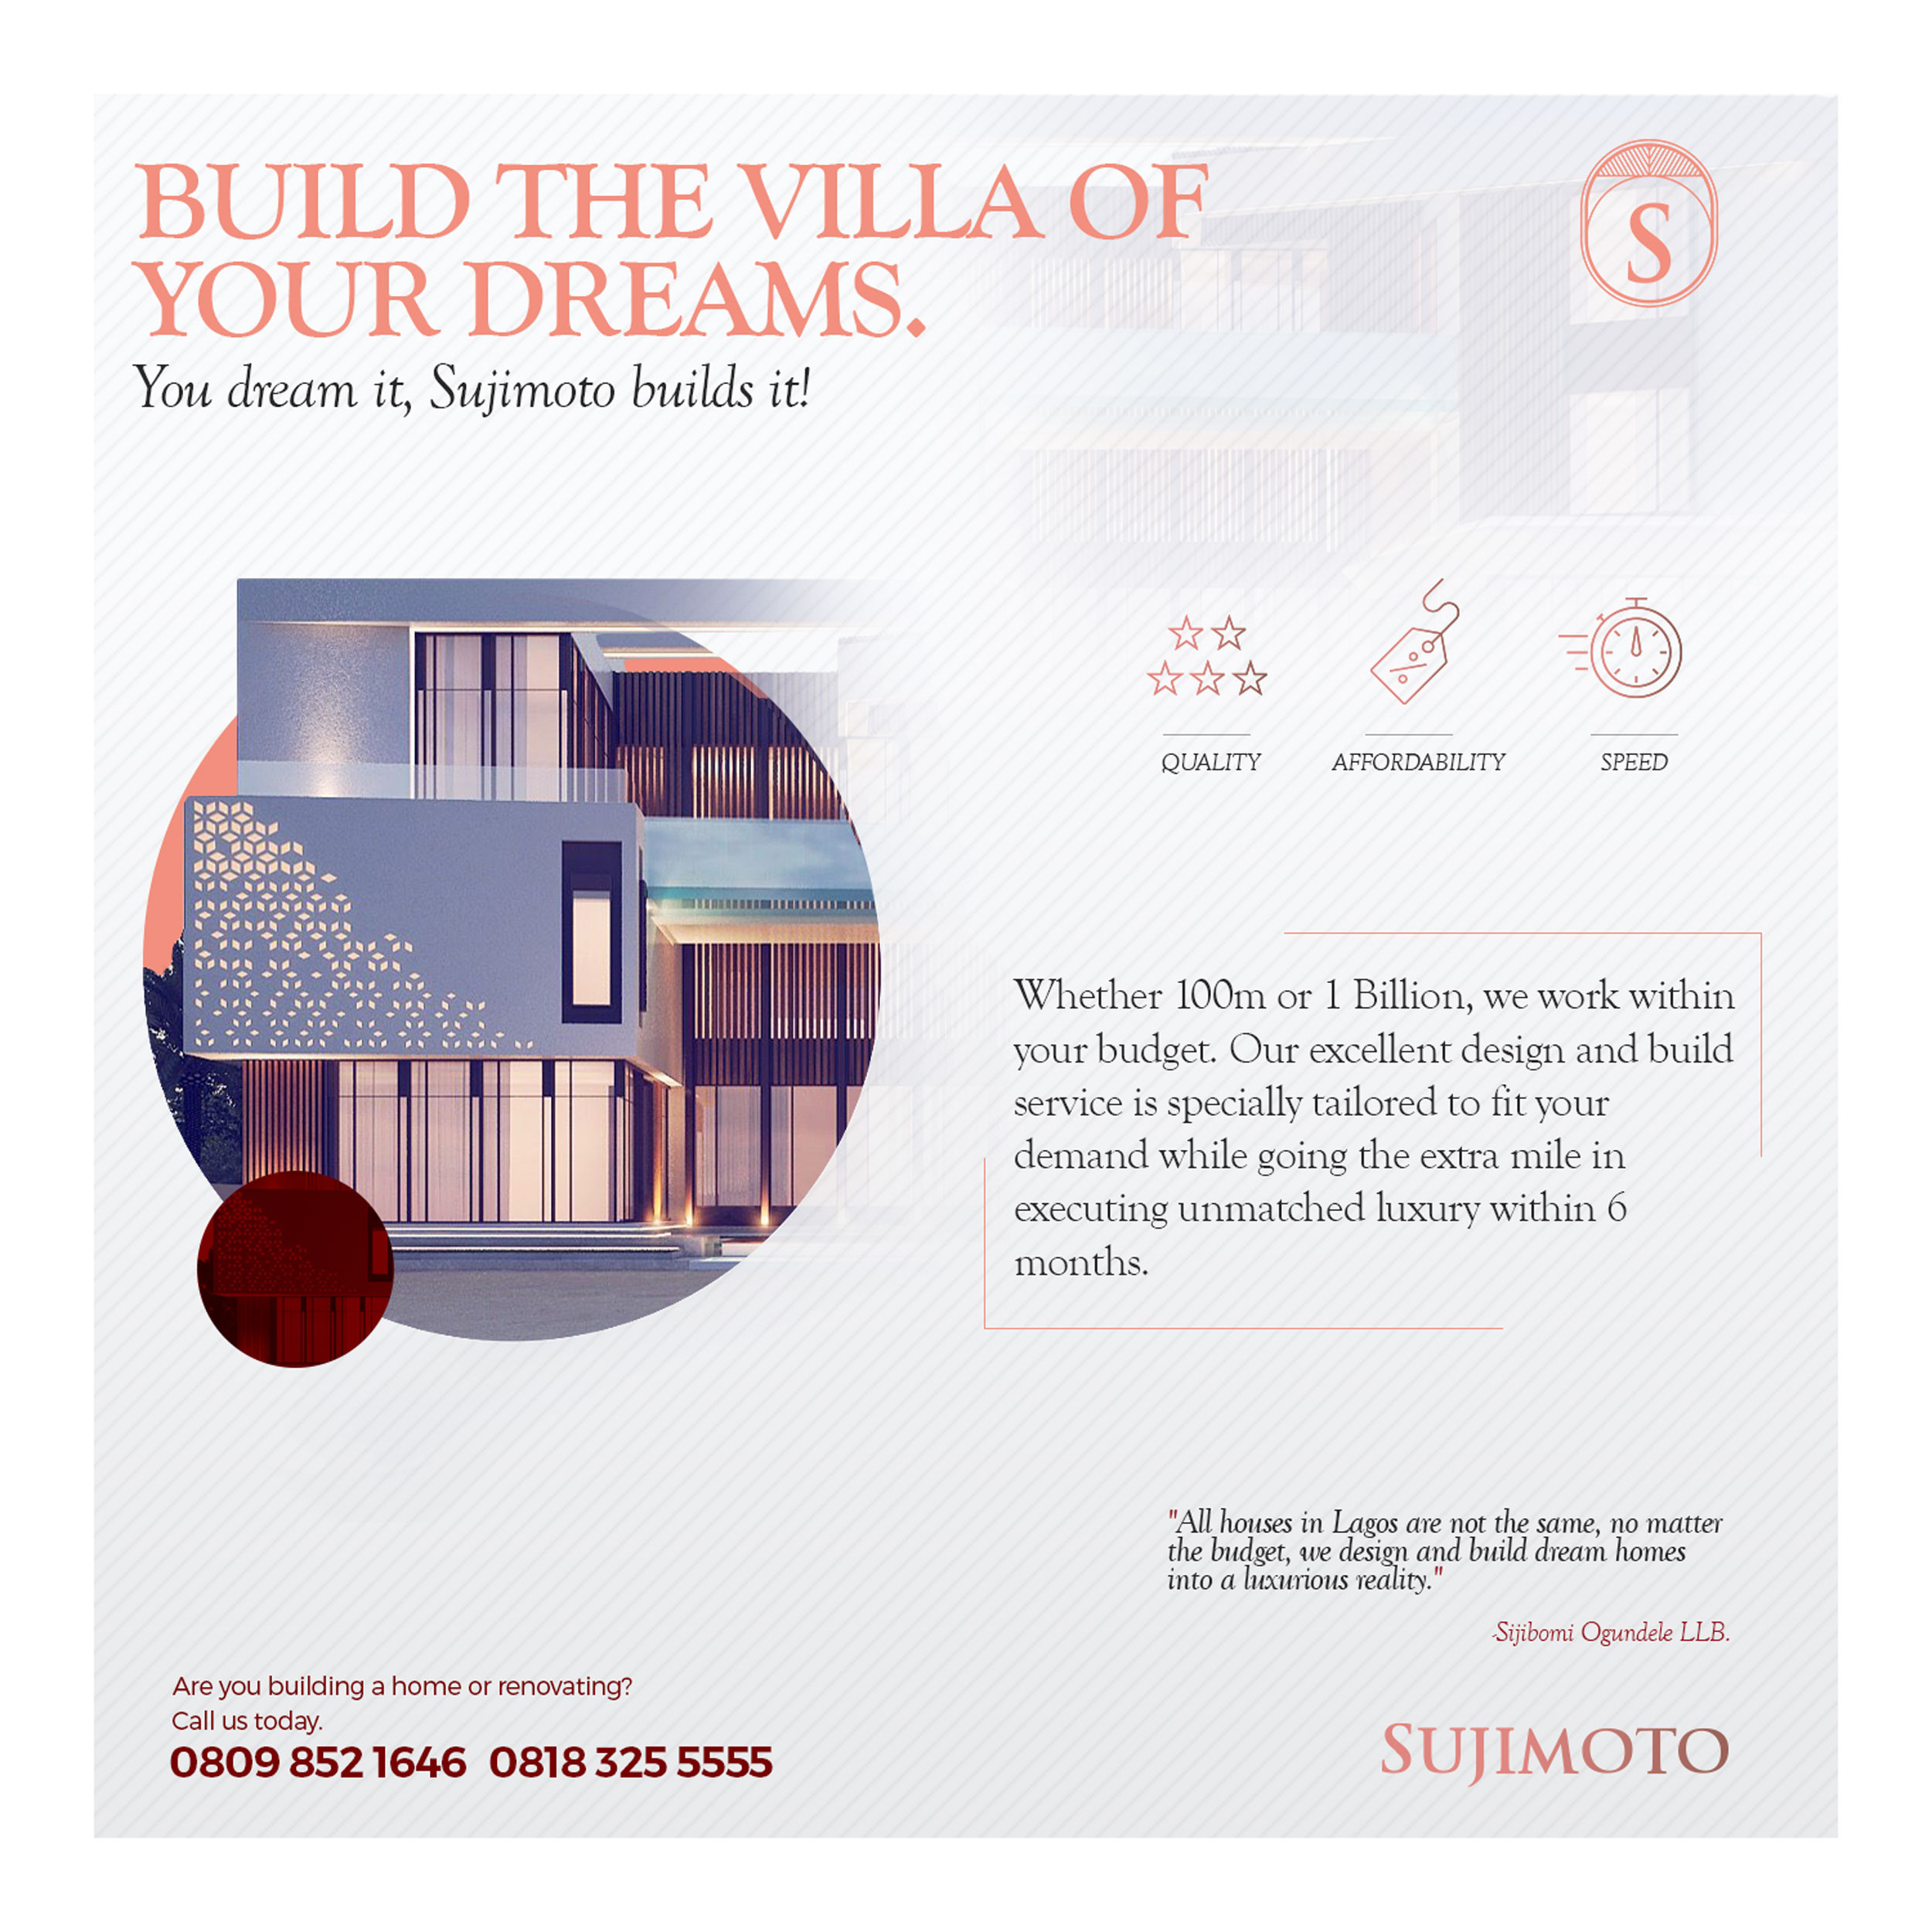 Thinking of Building or Renovating your own home Sujimoto is the Best and only Option